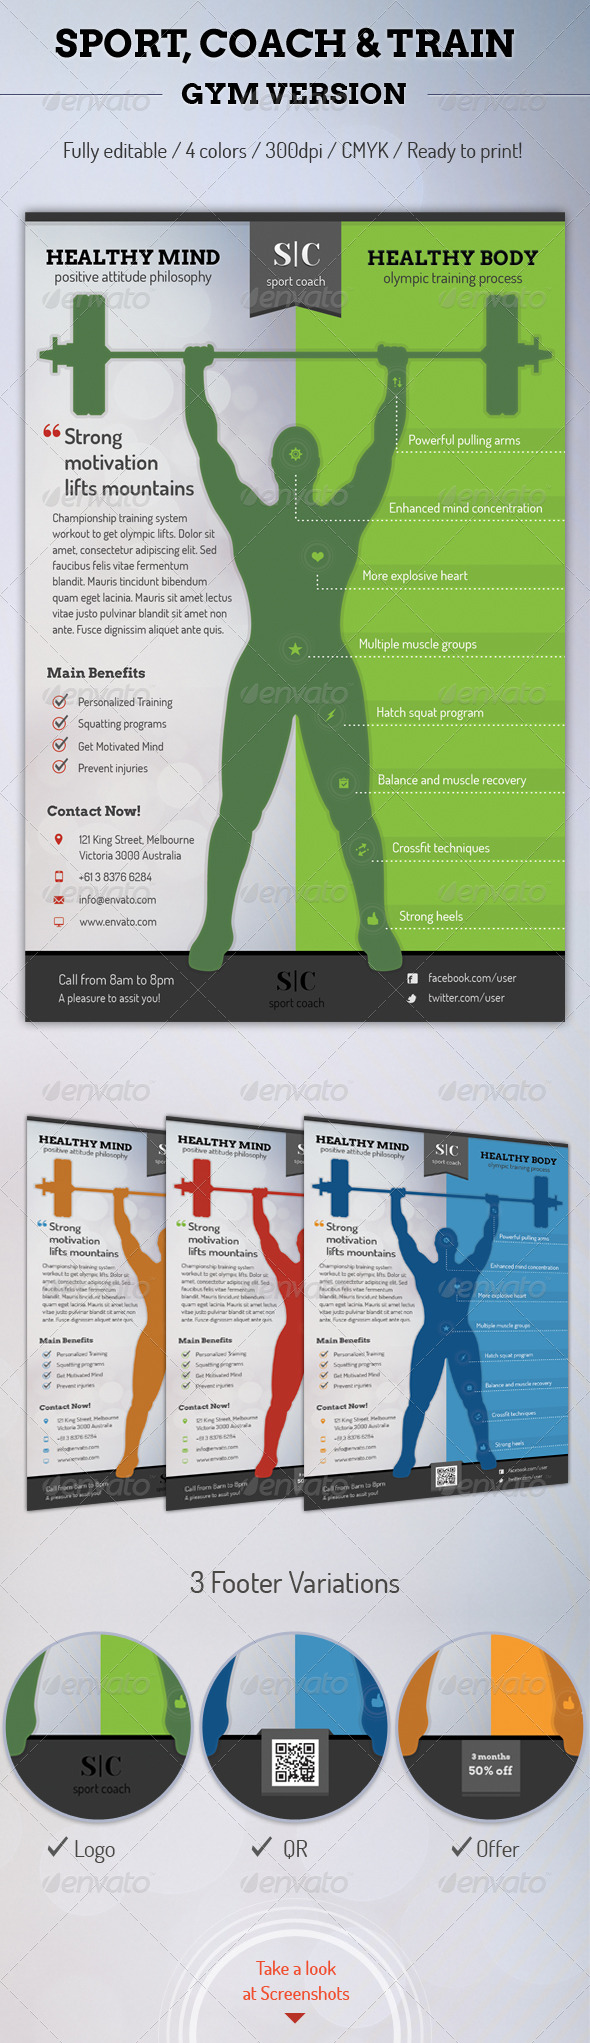 Sport Coach and Train Flyer - Gym Version - Sports Events